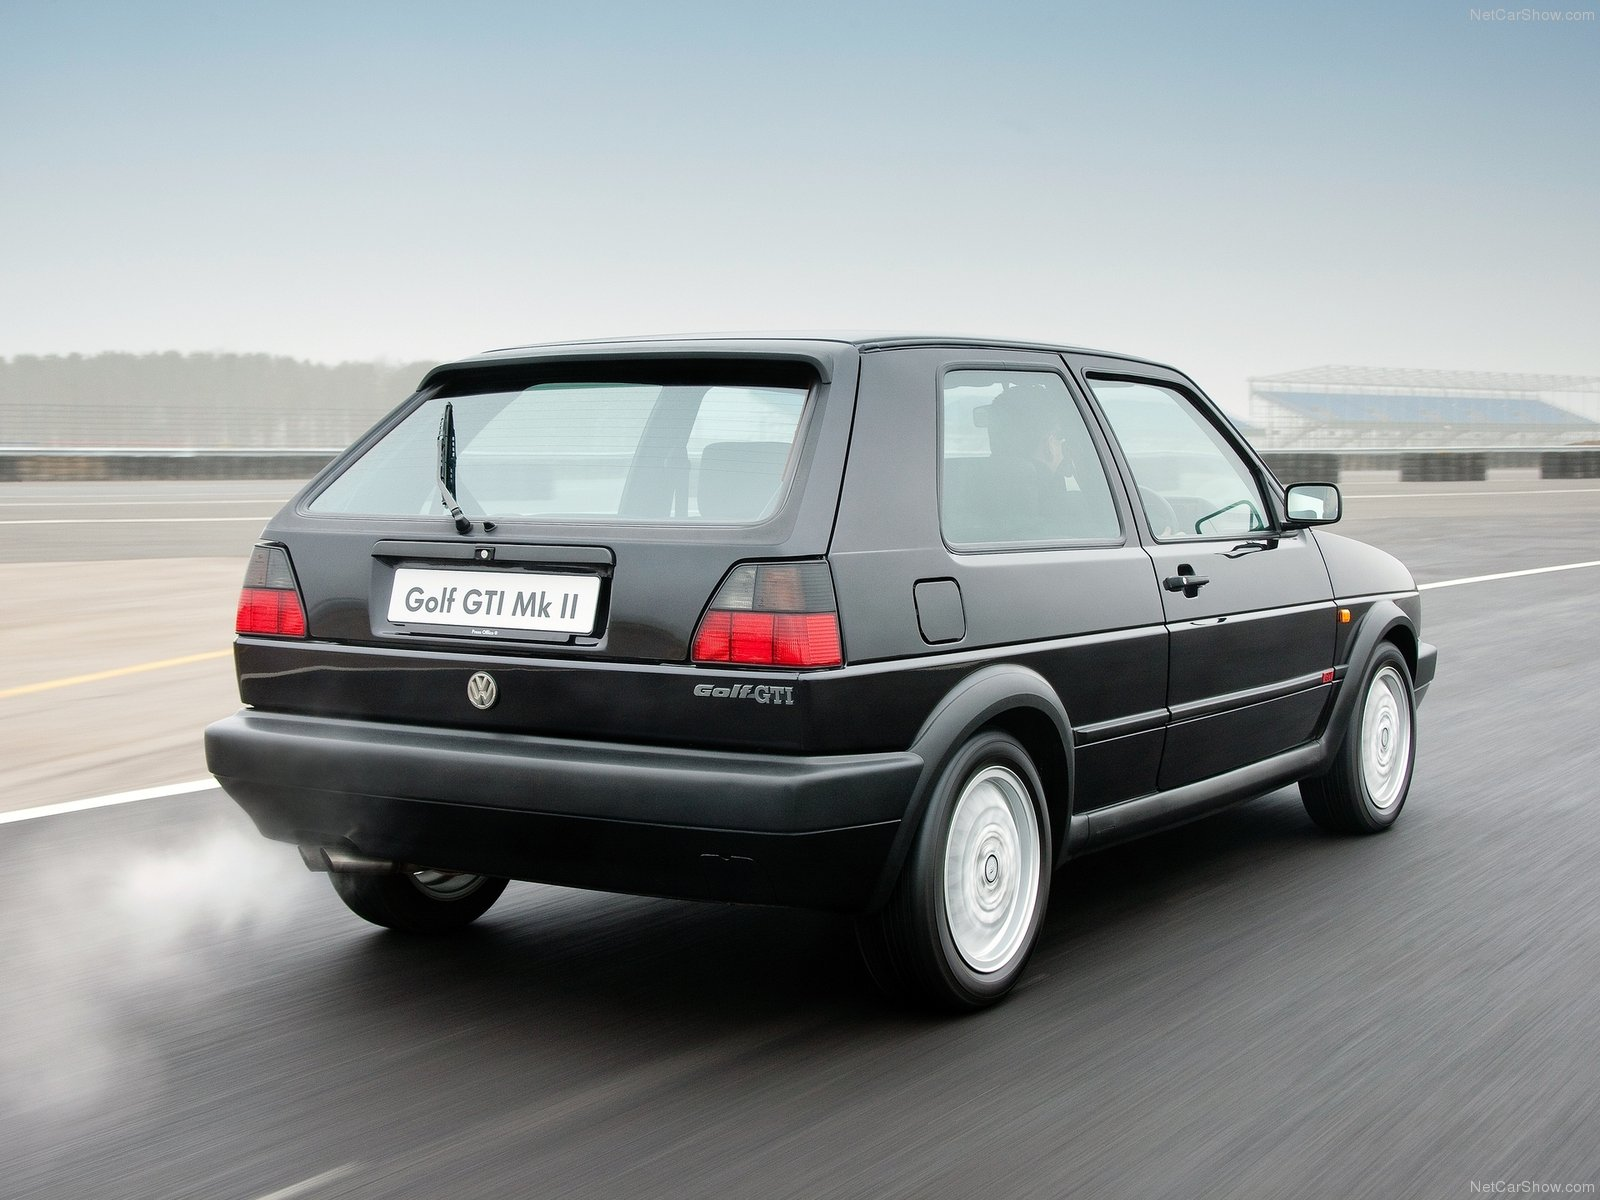 3 door hatchback on 1985 vw gti